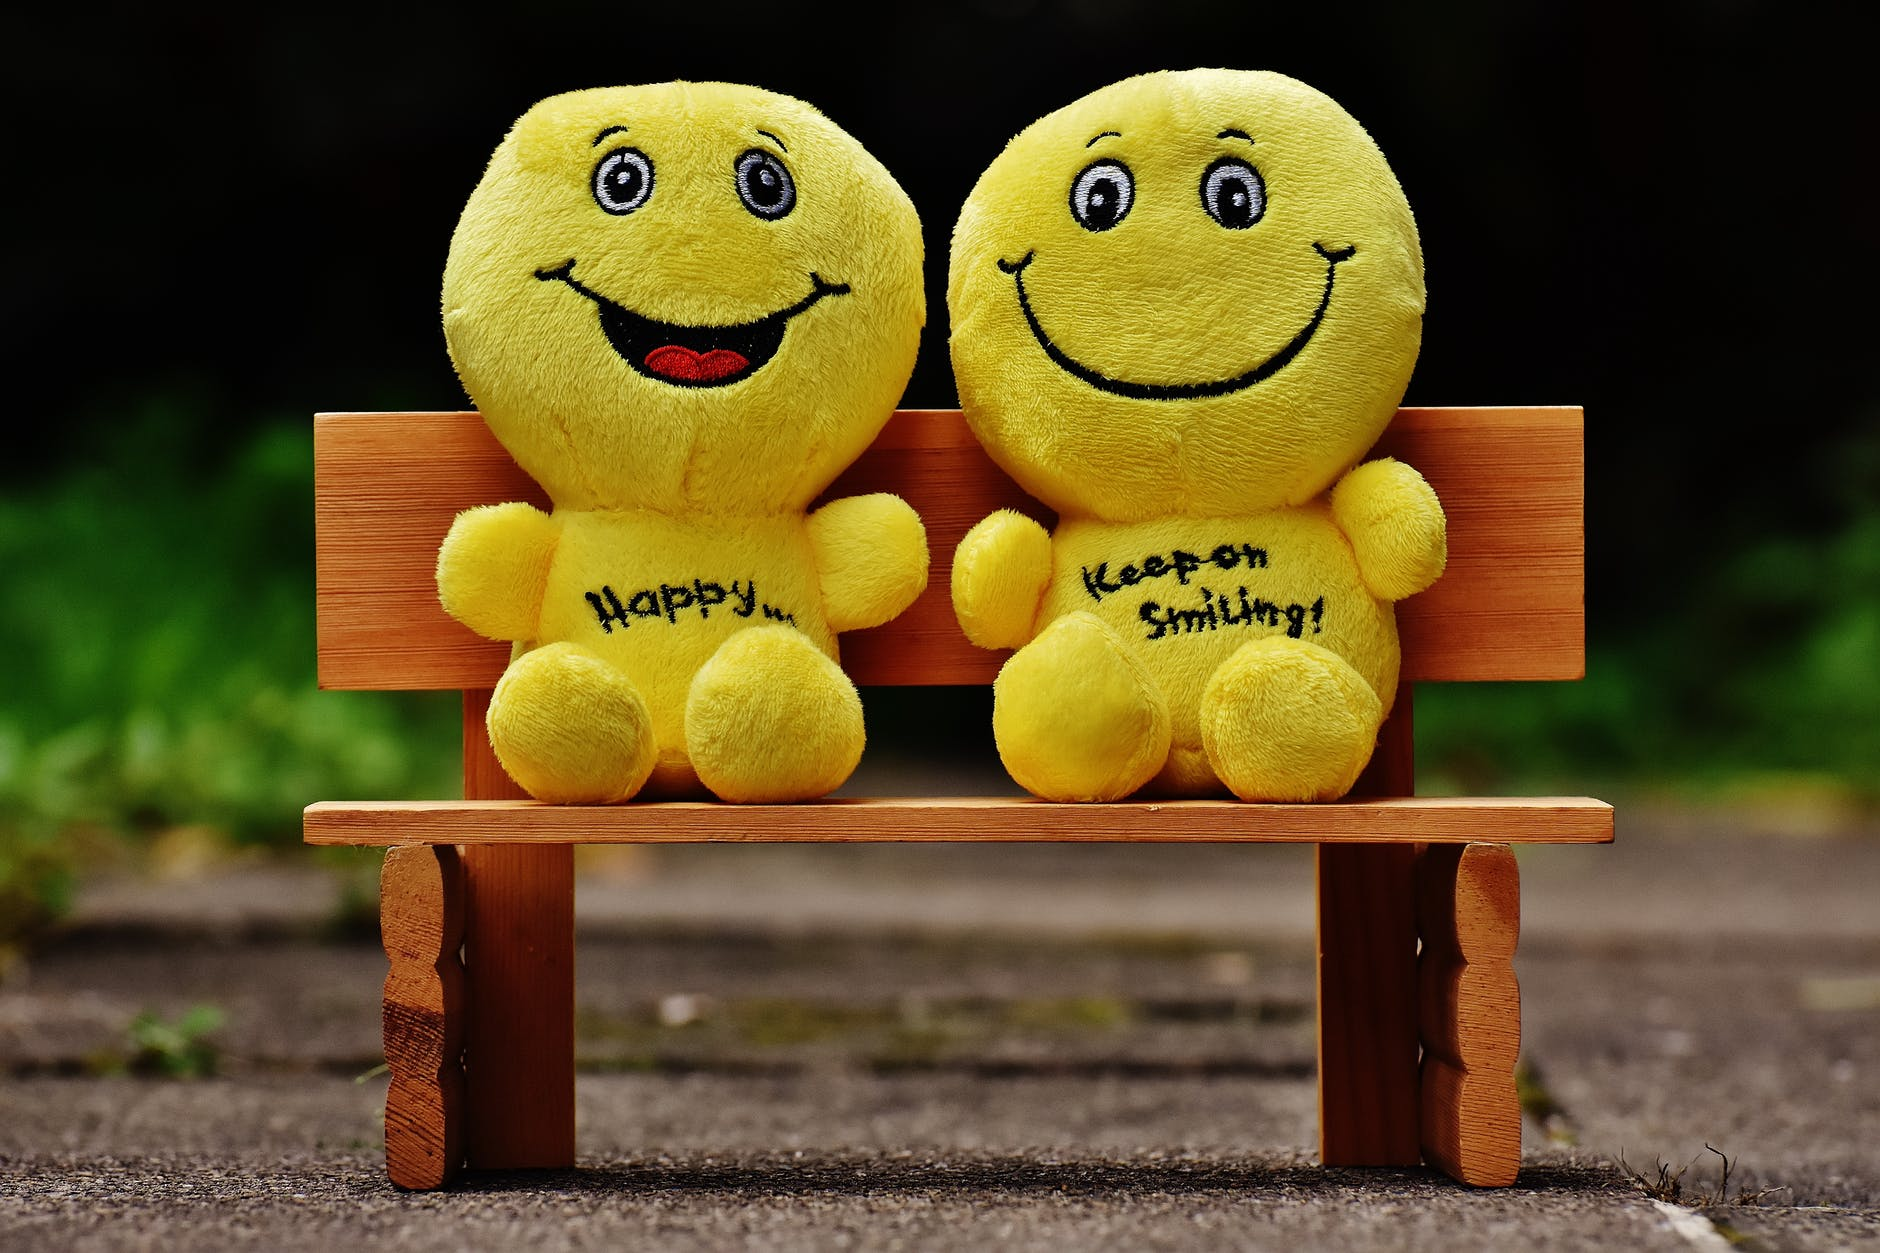 Two yellow stuffed toys on a bench. They represent smiley faces. Happiness can be found in a life after Brooklyn.